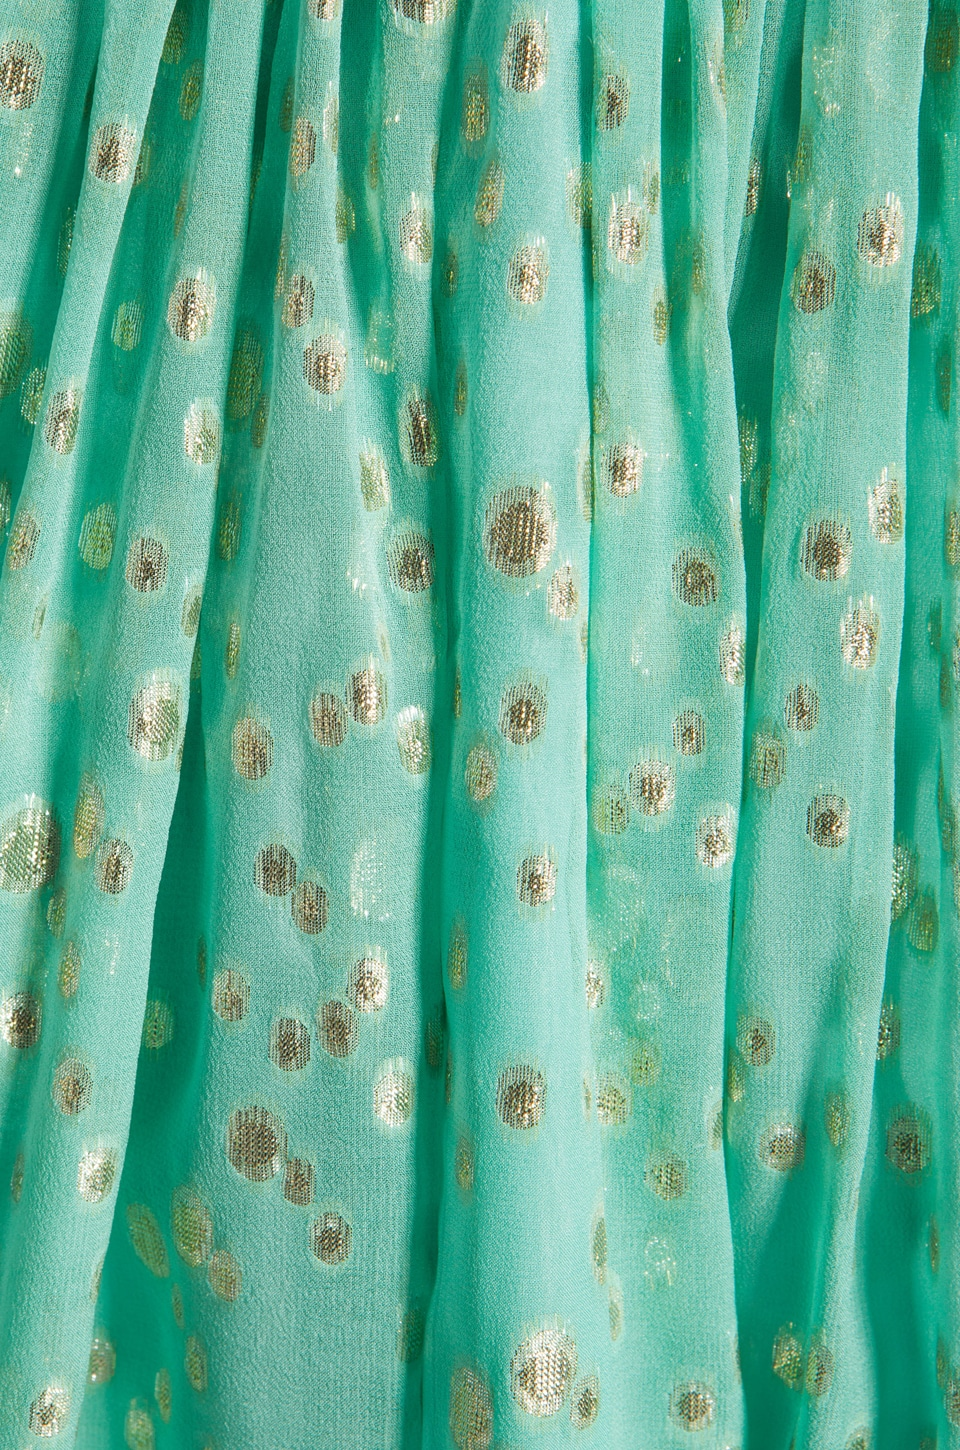 Shoshanna Rayna Dress in Aqua/Gold